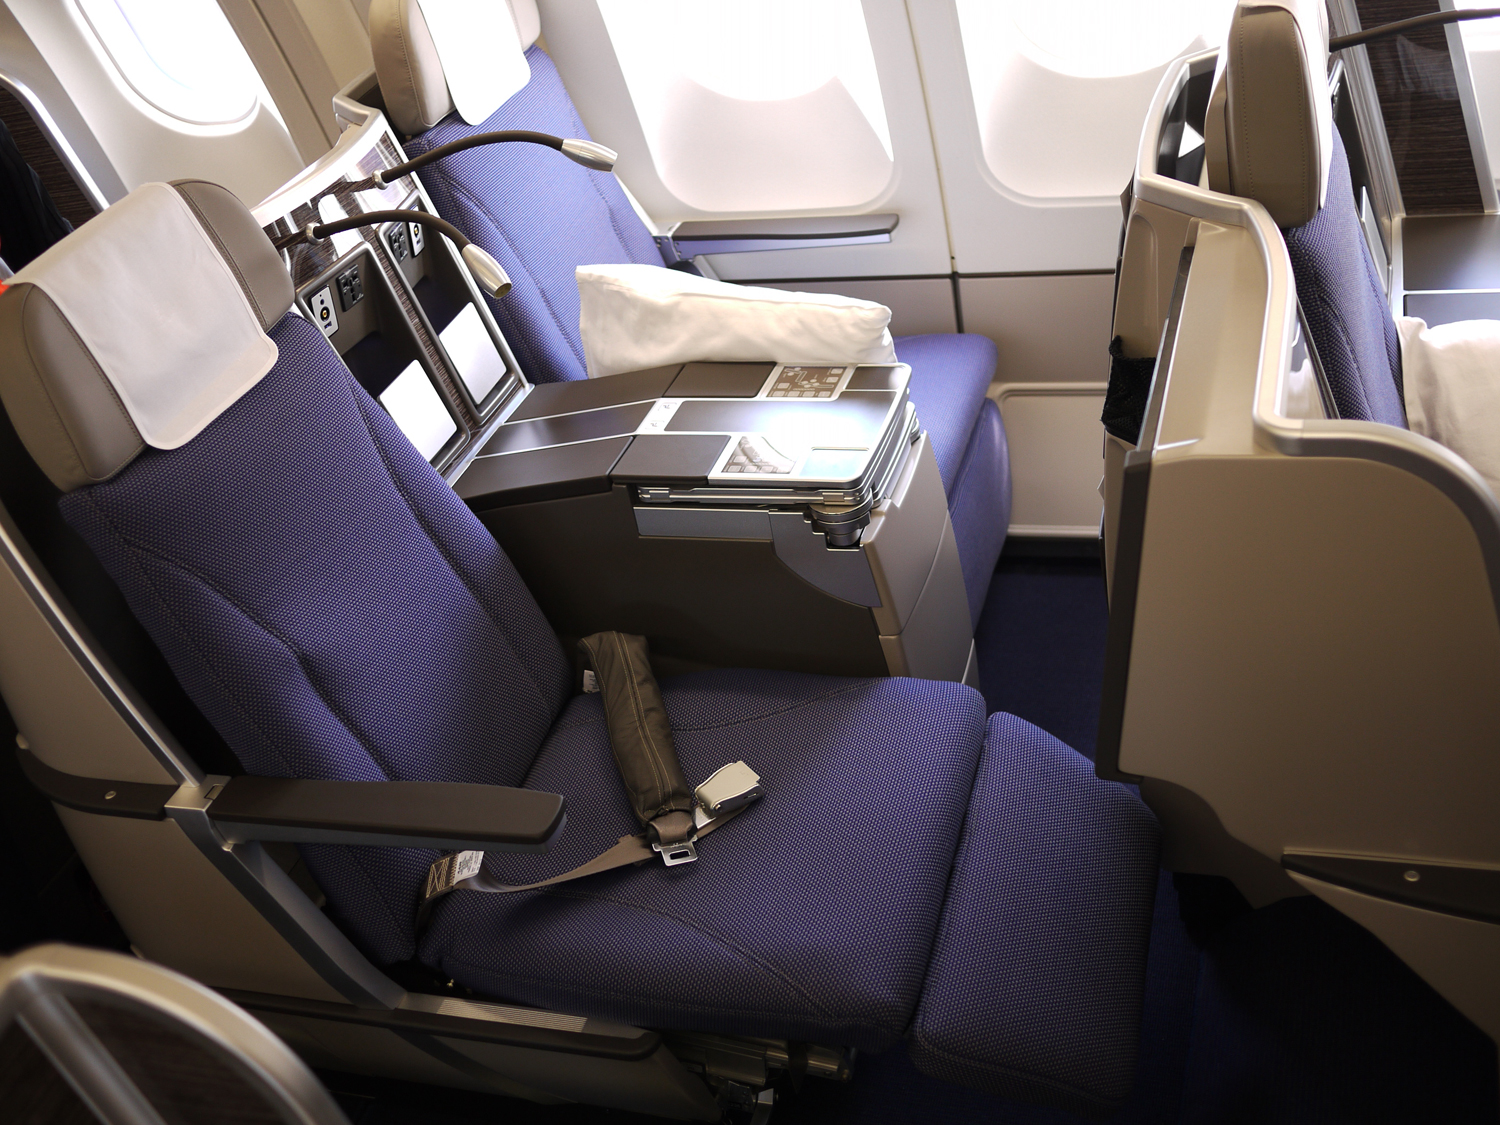 cheap business class seats on Brussels Airlines upright